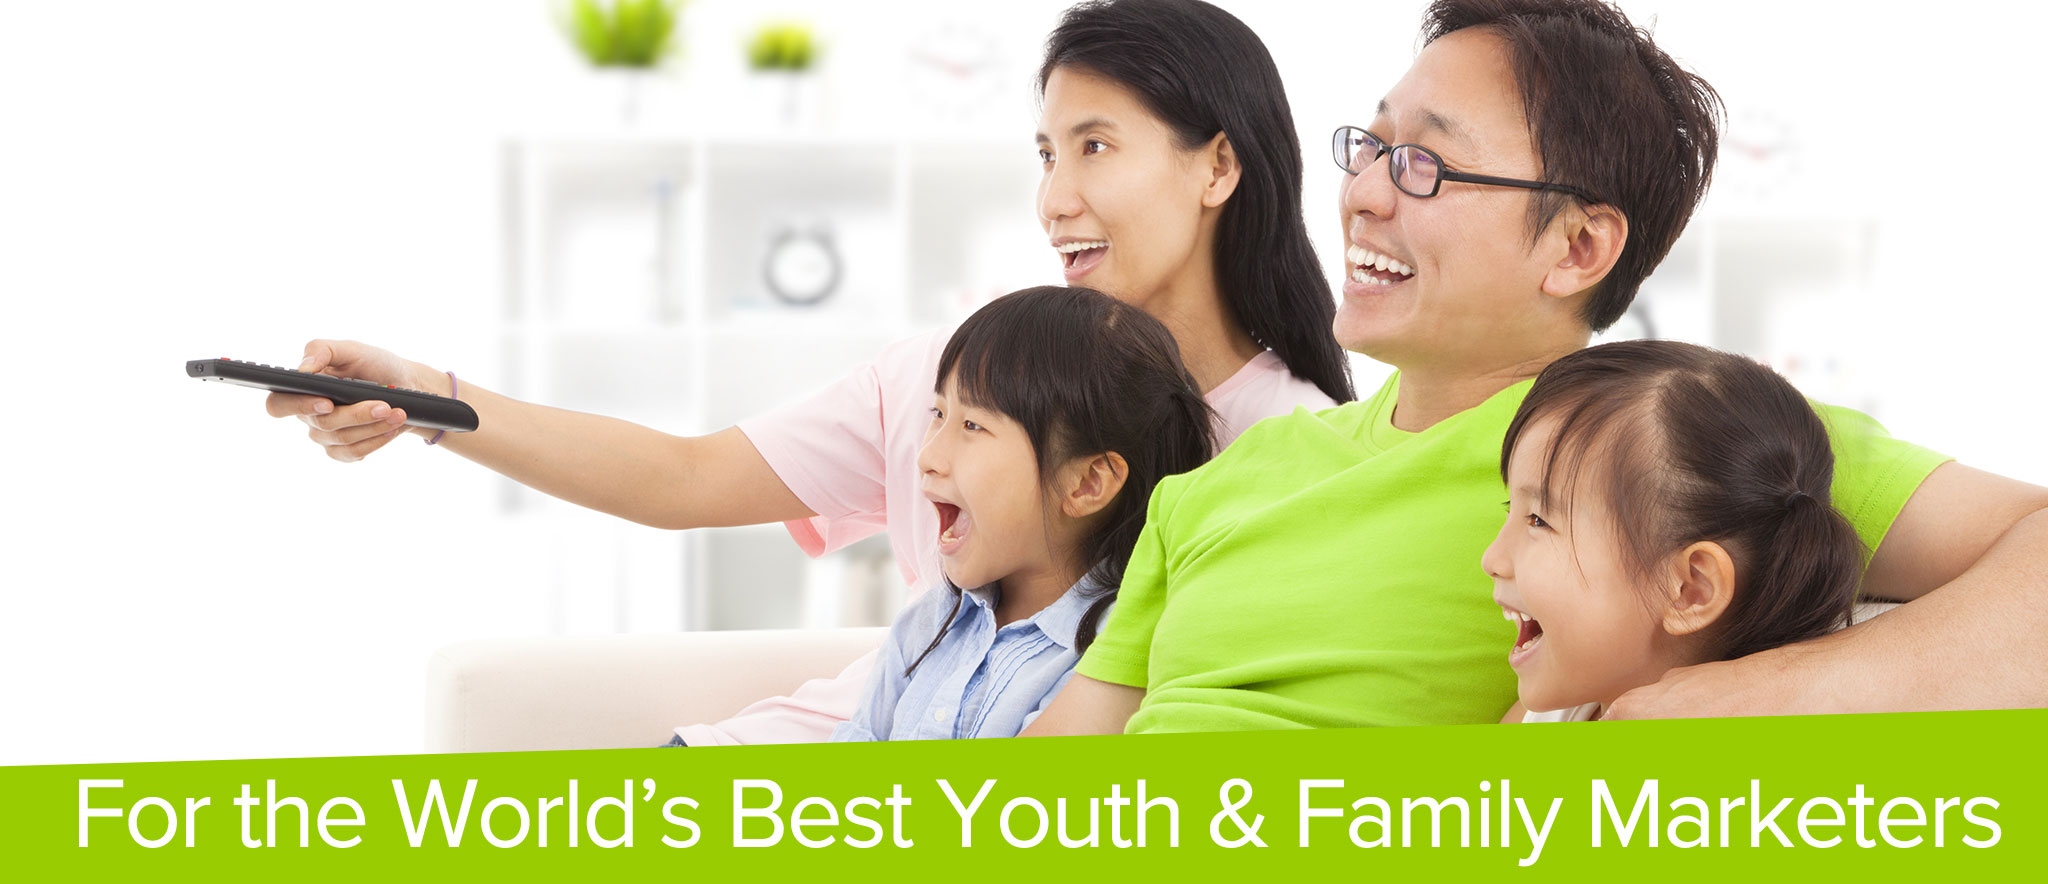 For the World's Best Youth & Family Marketers